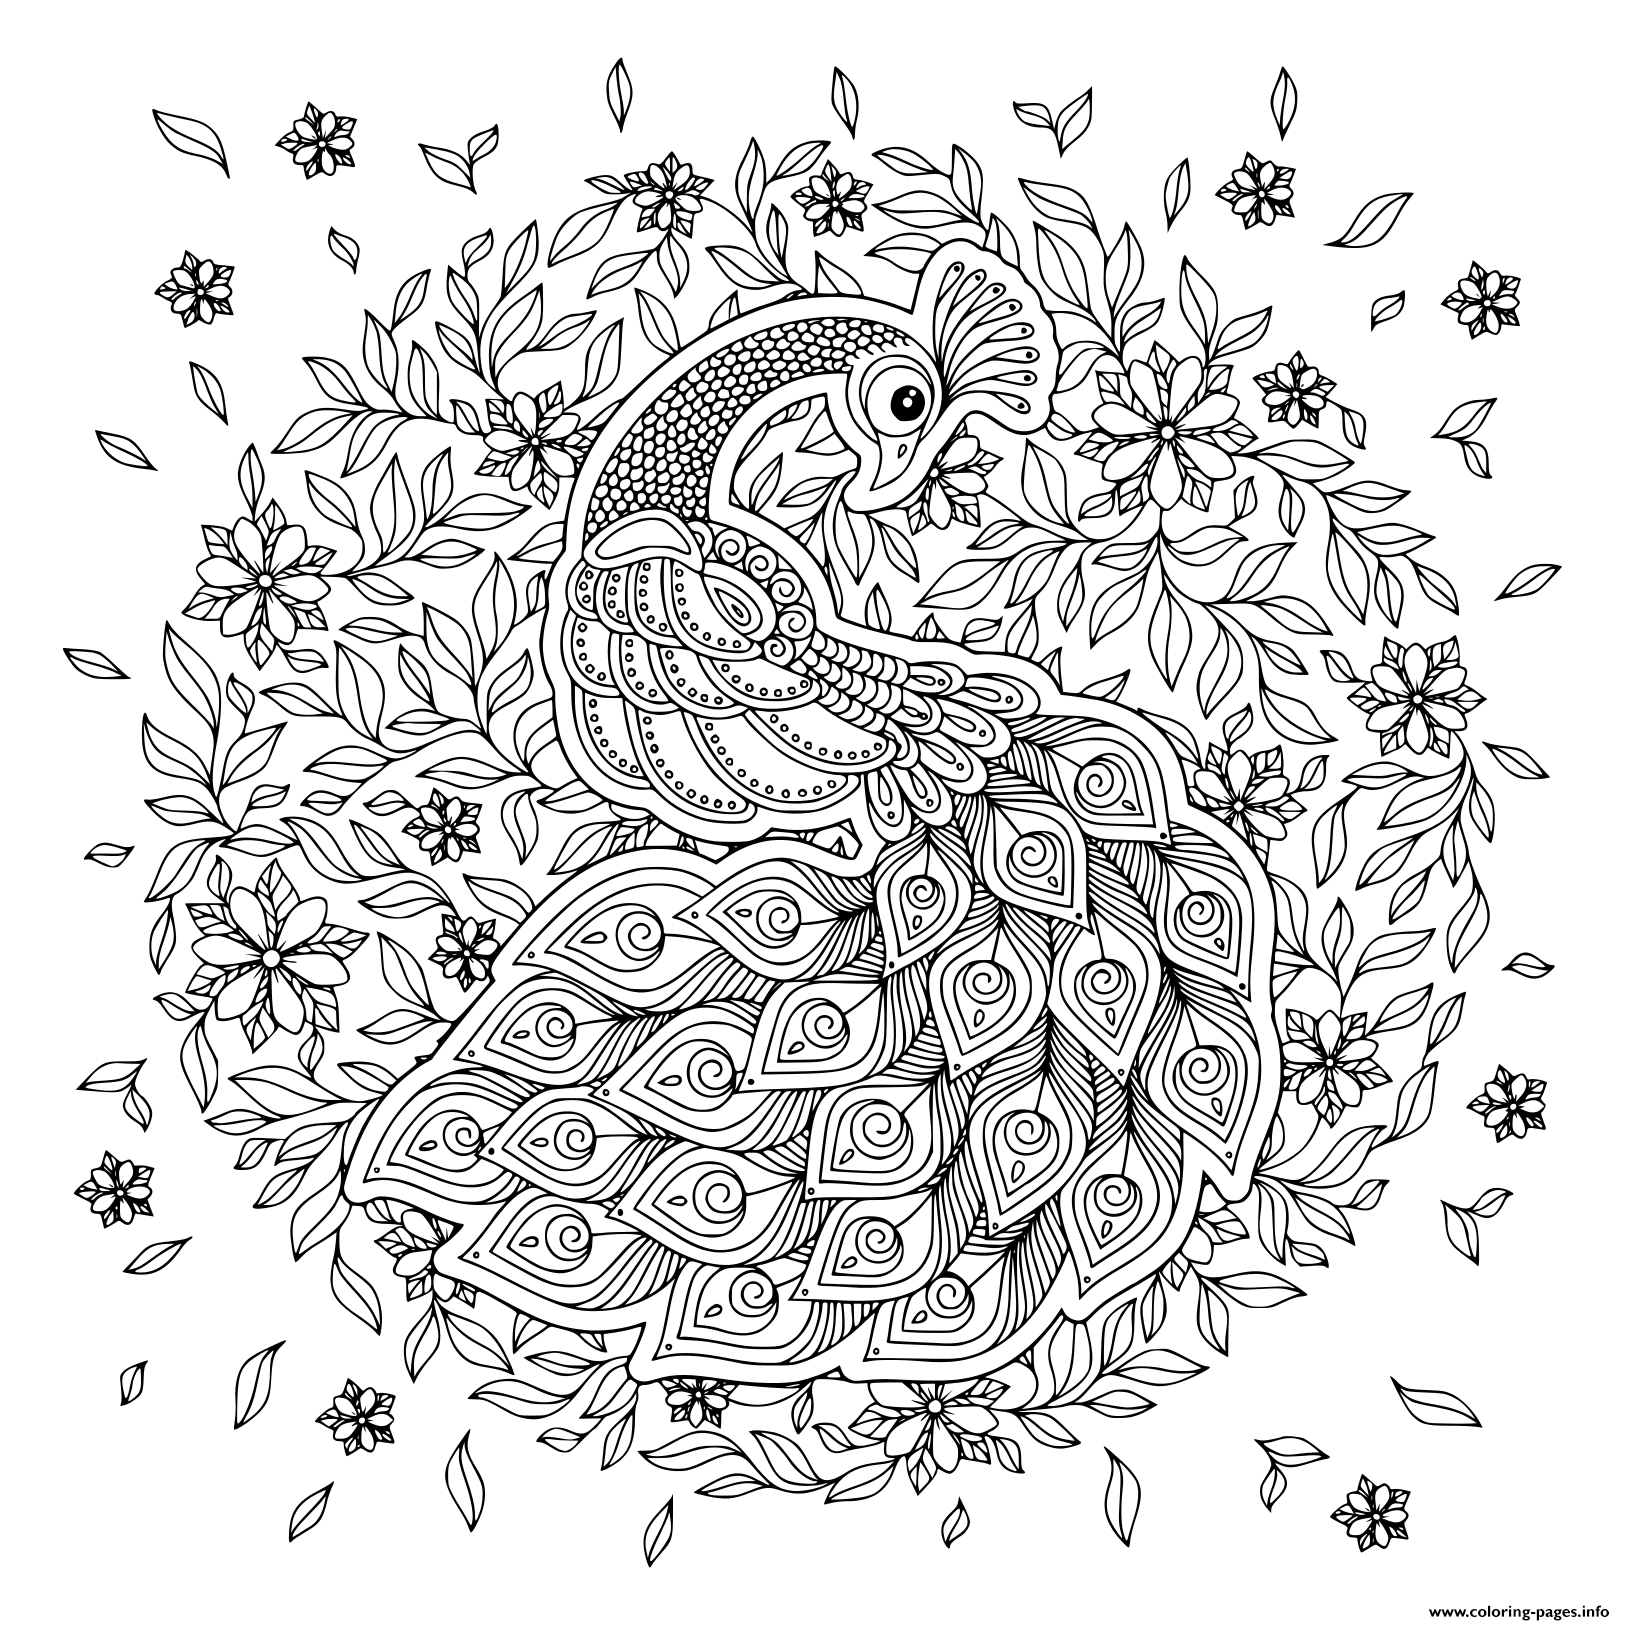 black and white coloring pages for adults sunflower coloring sheet coloring sheets for young adults black coloring for white pages and adults